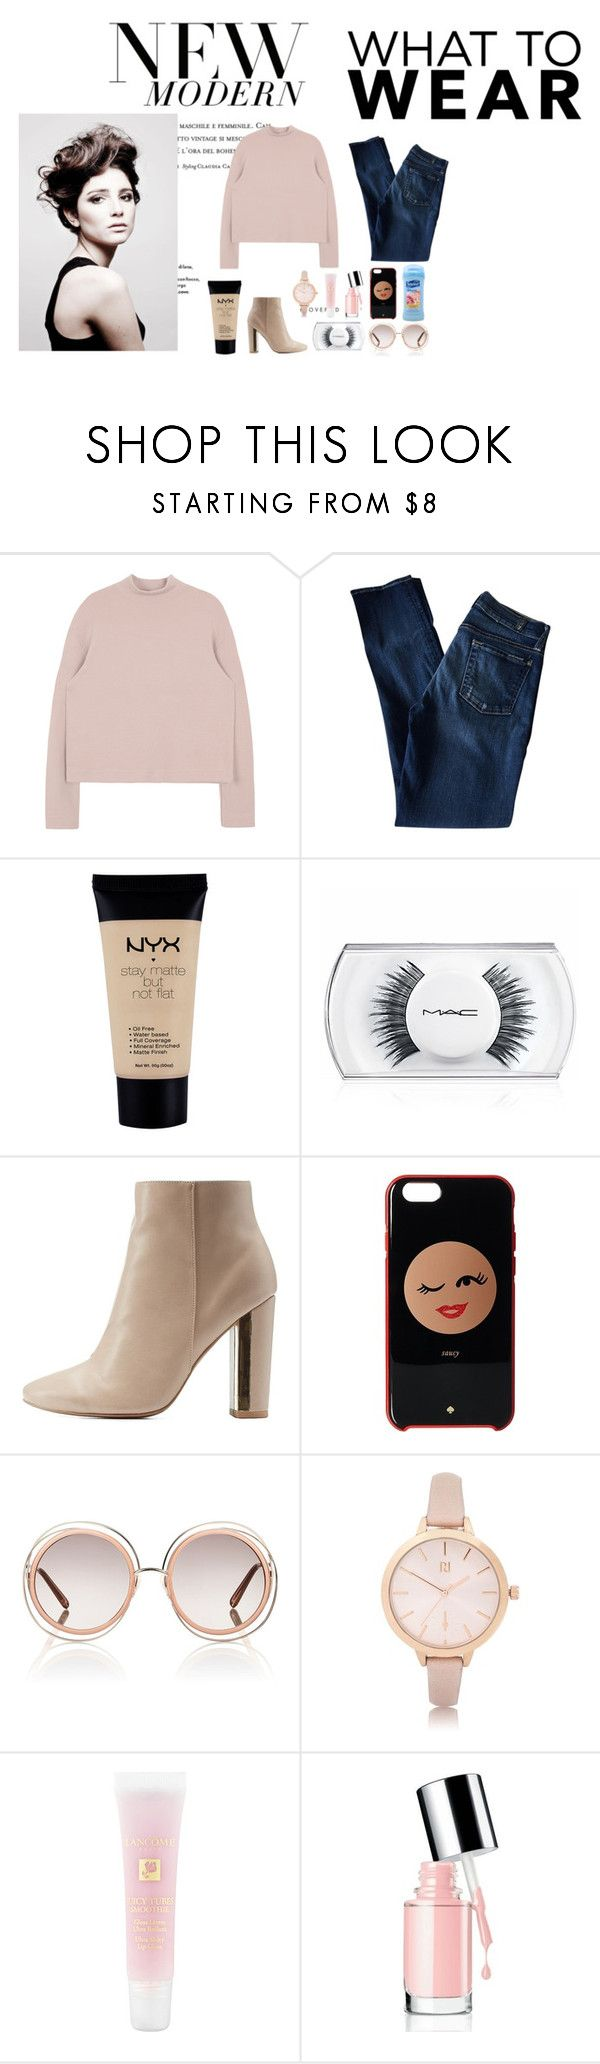 """""""Modern Sheek"""" by summer-118 ❤ liked on Polyvore featuring Angelo, 7 For All Mankind, NYX, MAC Cosmetics, Qupid, Kate Spade, Chloé, River Island, Lancôme and Suave"""